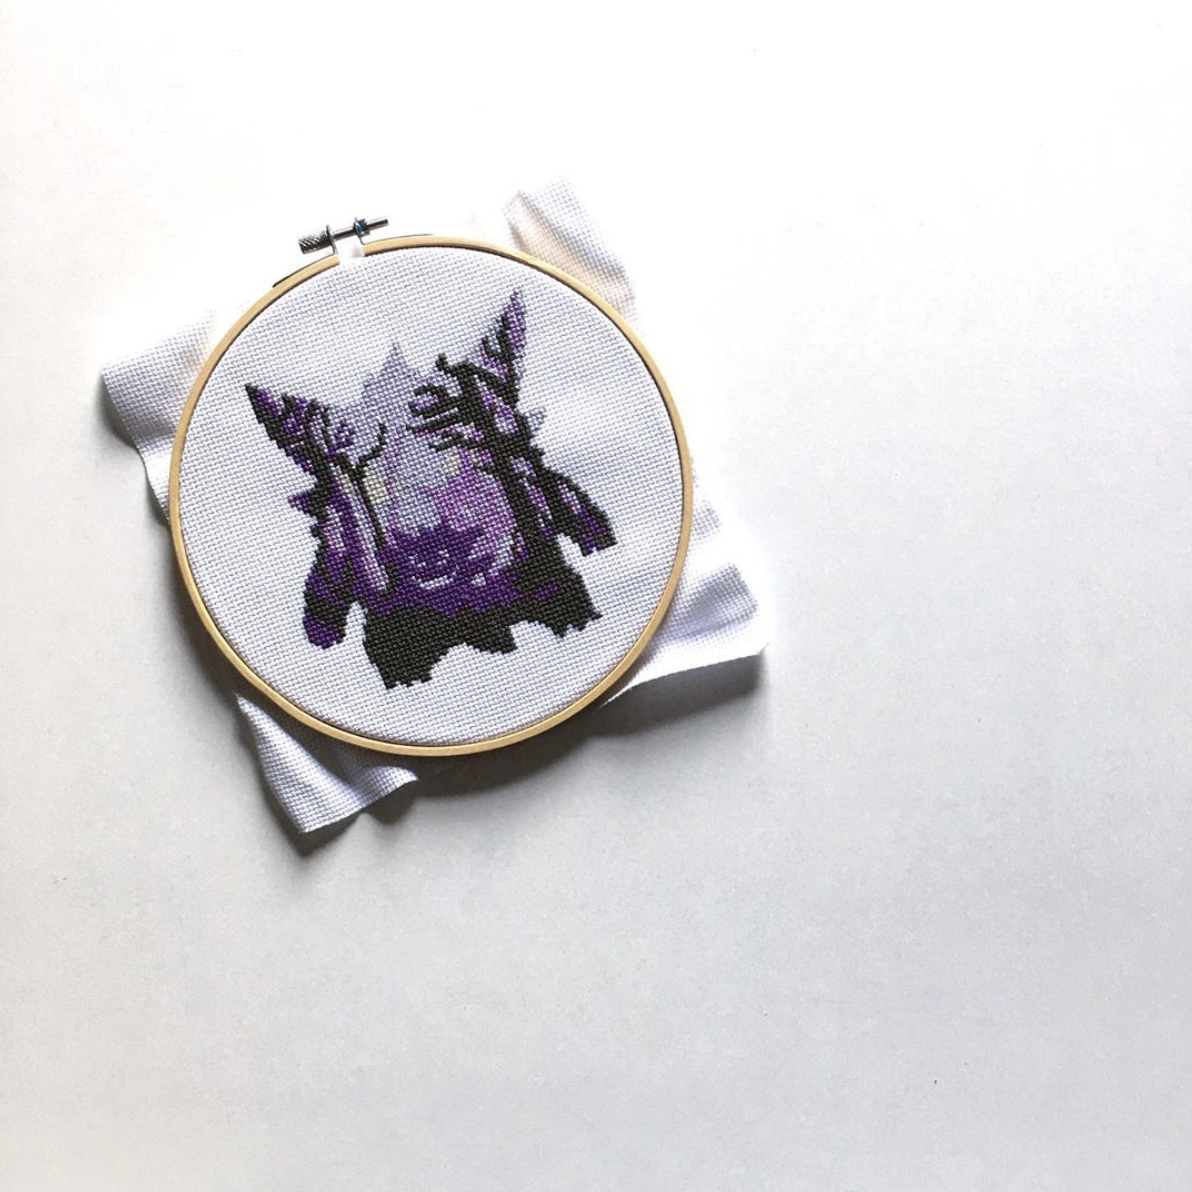 Gengar Cross Stitching